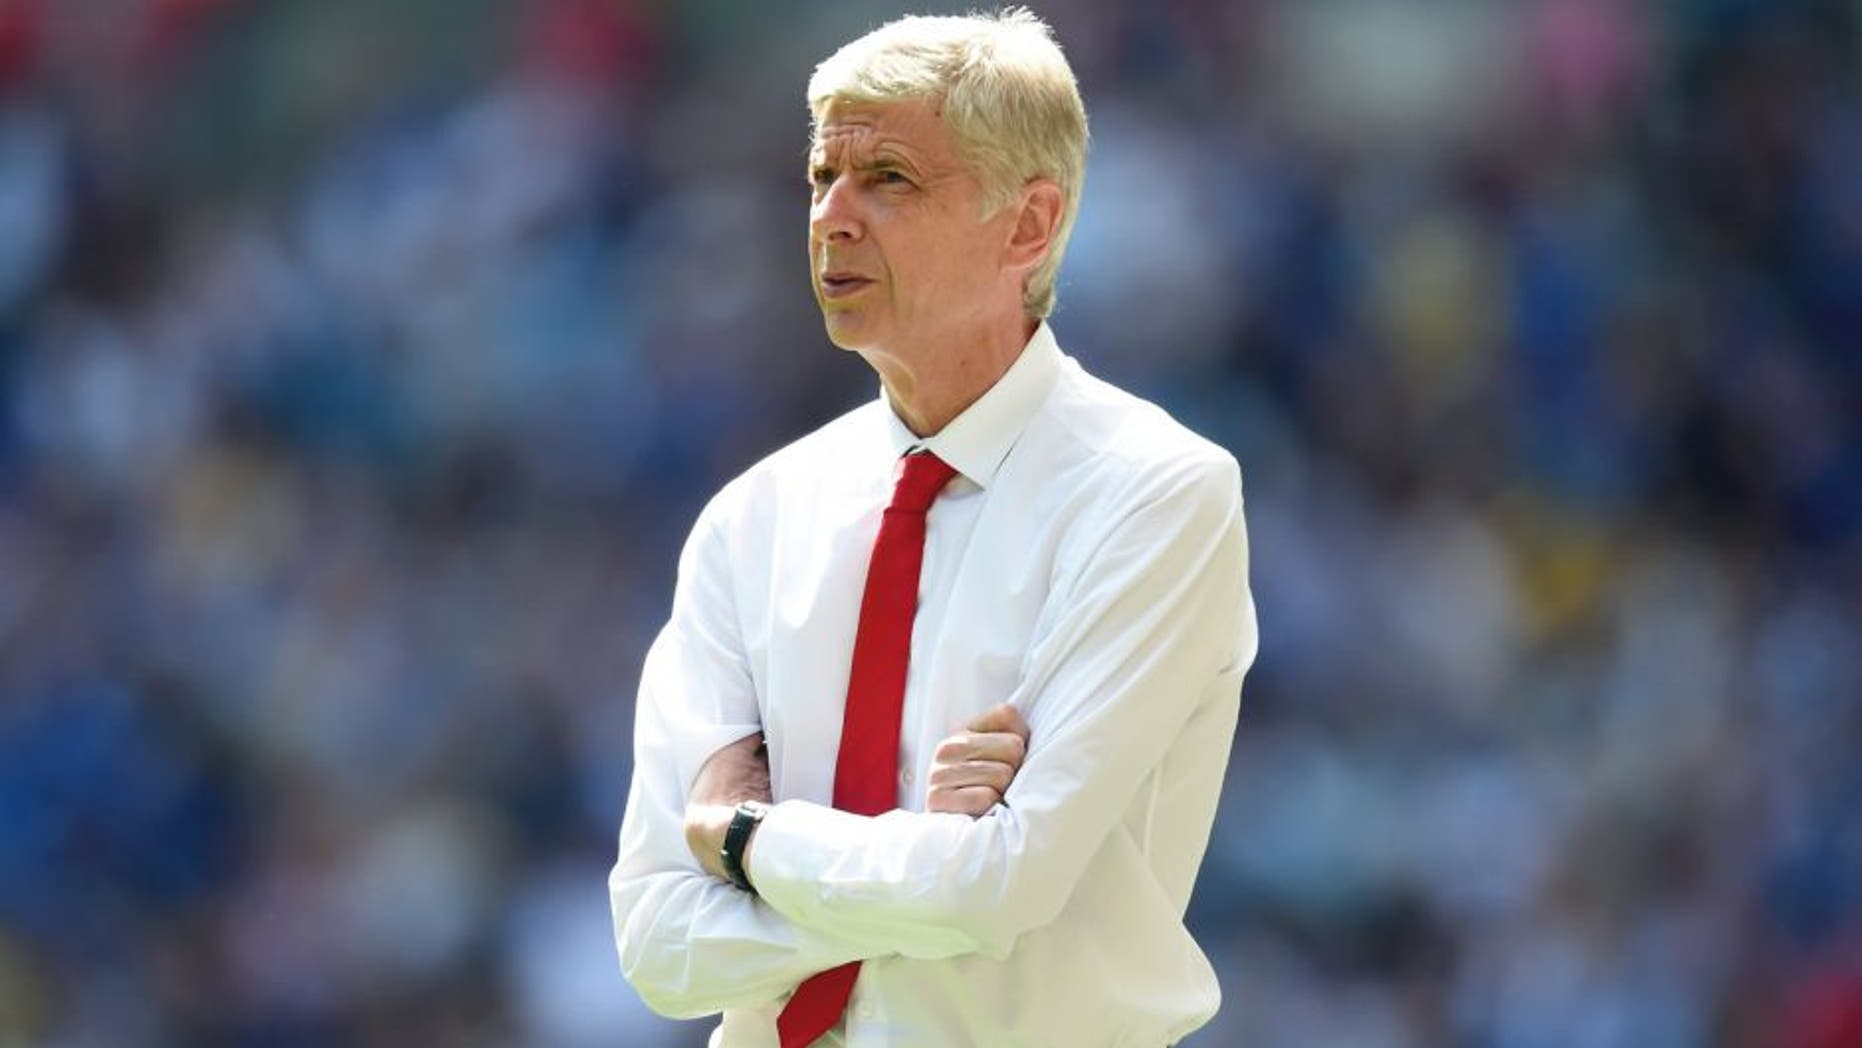 LONDON, ENGLAND - AUGUST 02: Arsene Wenger, Manager of Arsenal looks on during the FA Community Shield match between Chelsea and Arsenal at Wembley Stadium on August 2, 2015 in London, England. (Photo by Michael Regan - The FA/The FA via Getty Images)